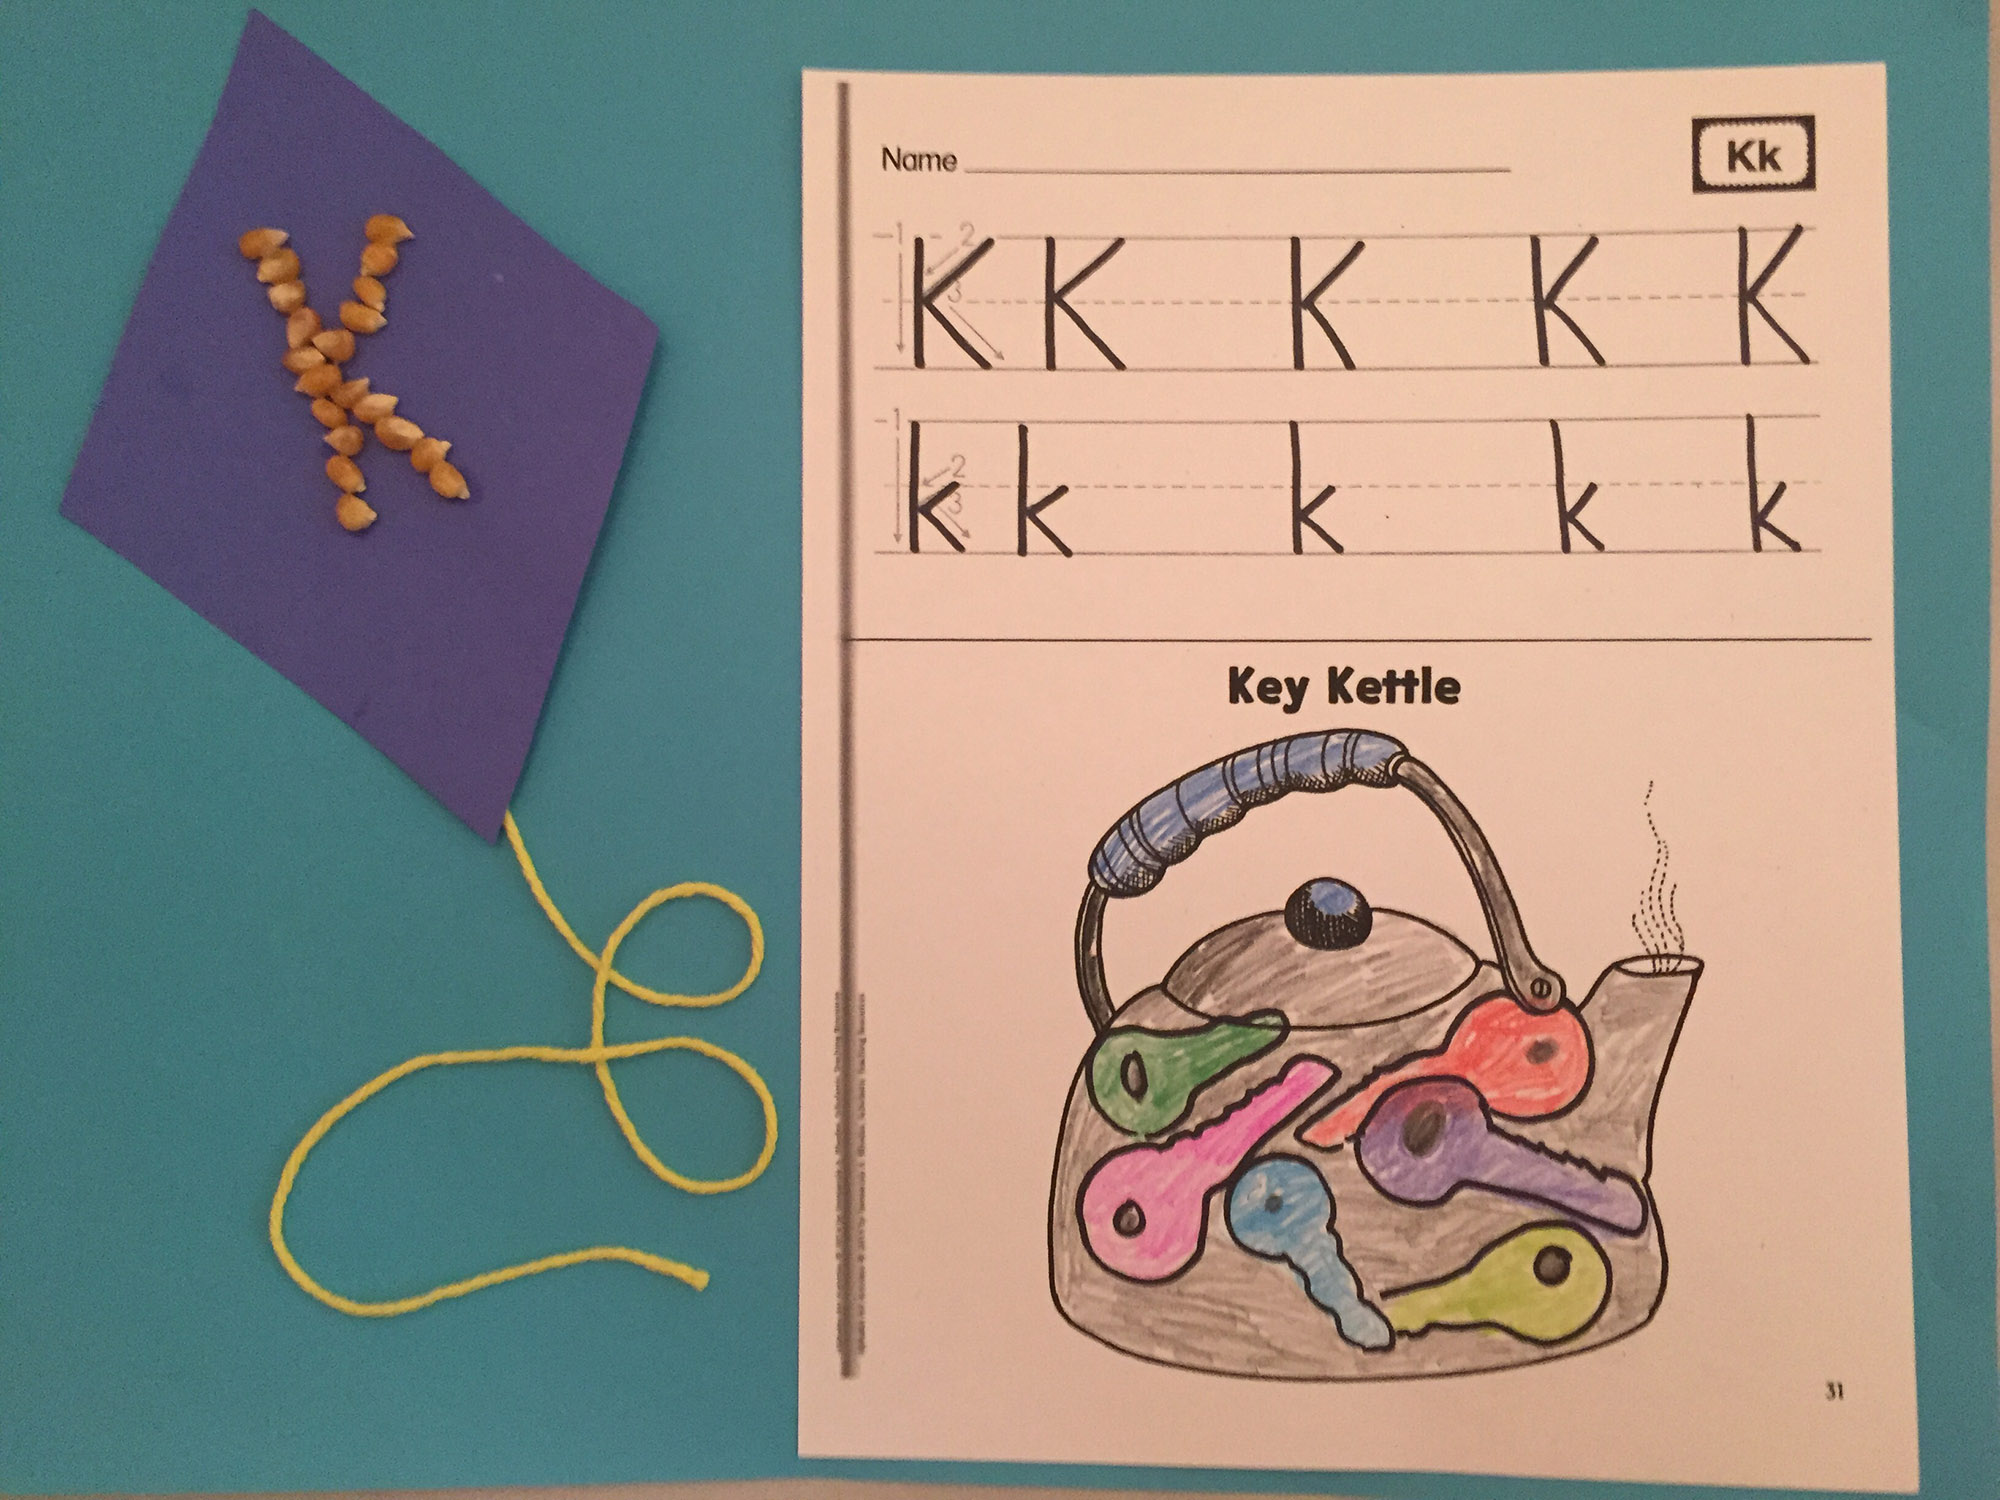 Kernel K Kite and Key Kettle